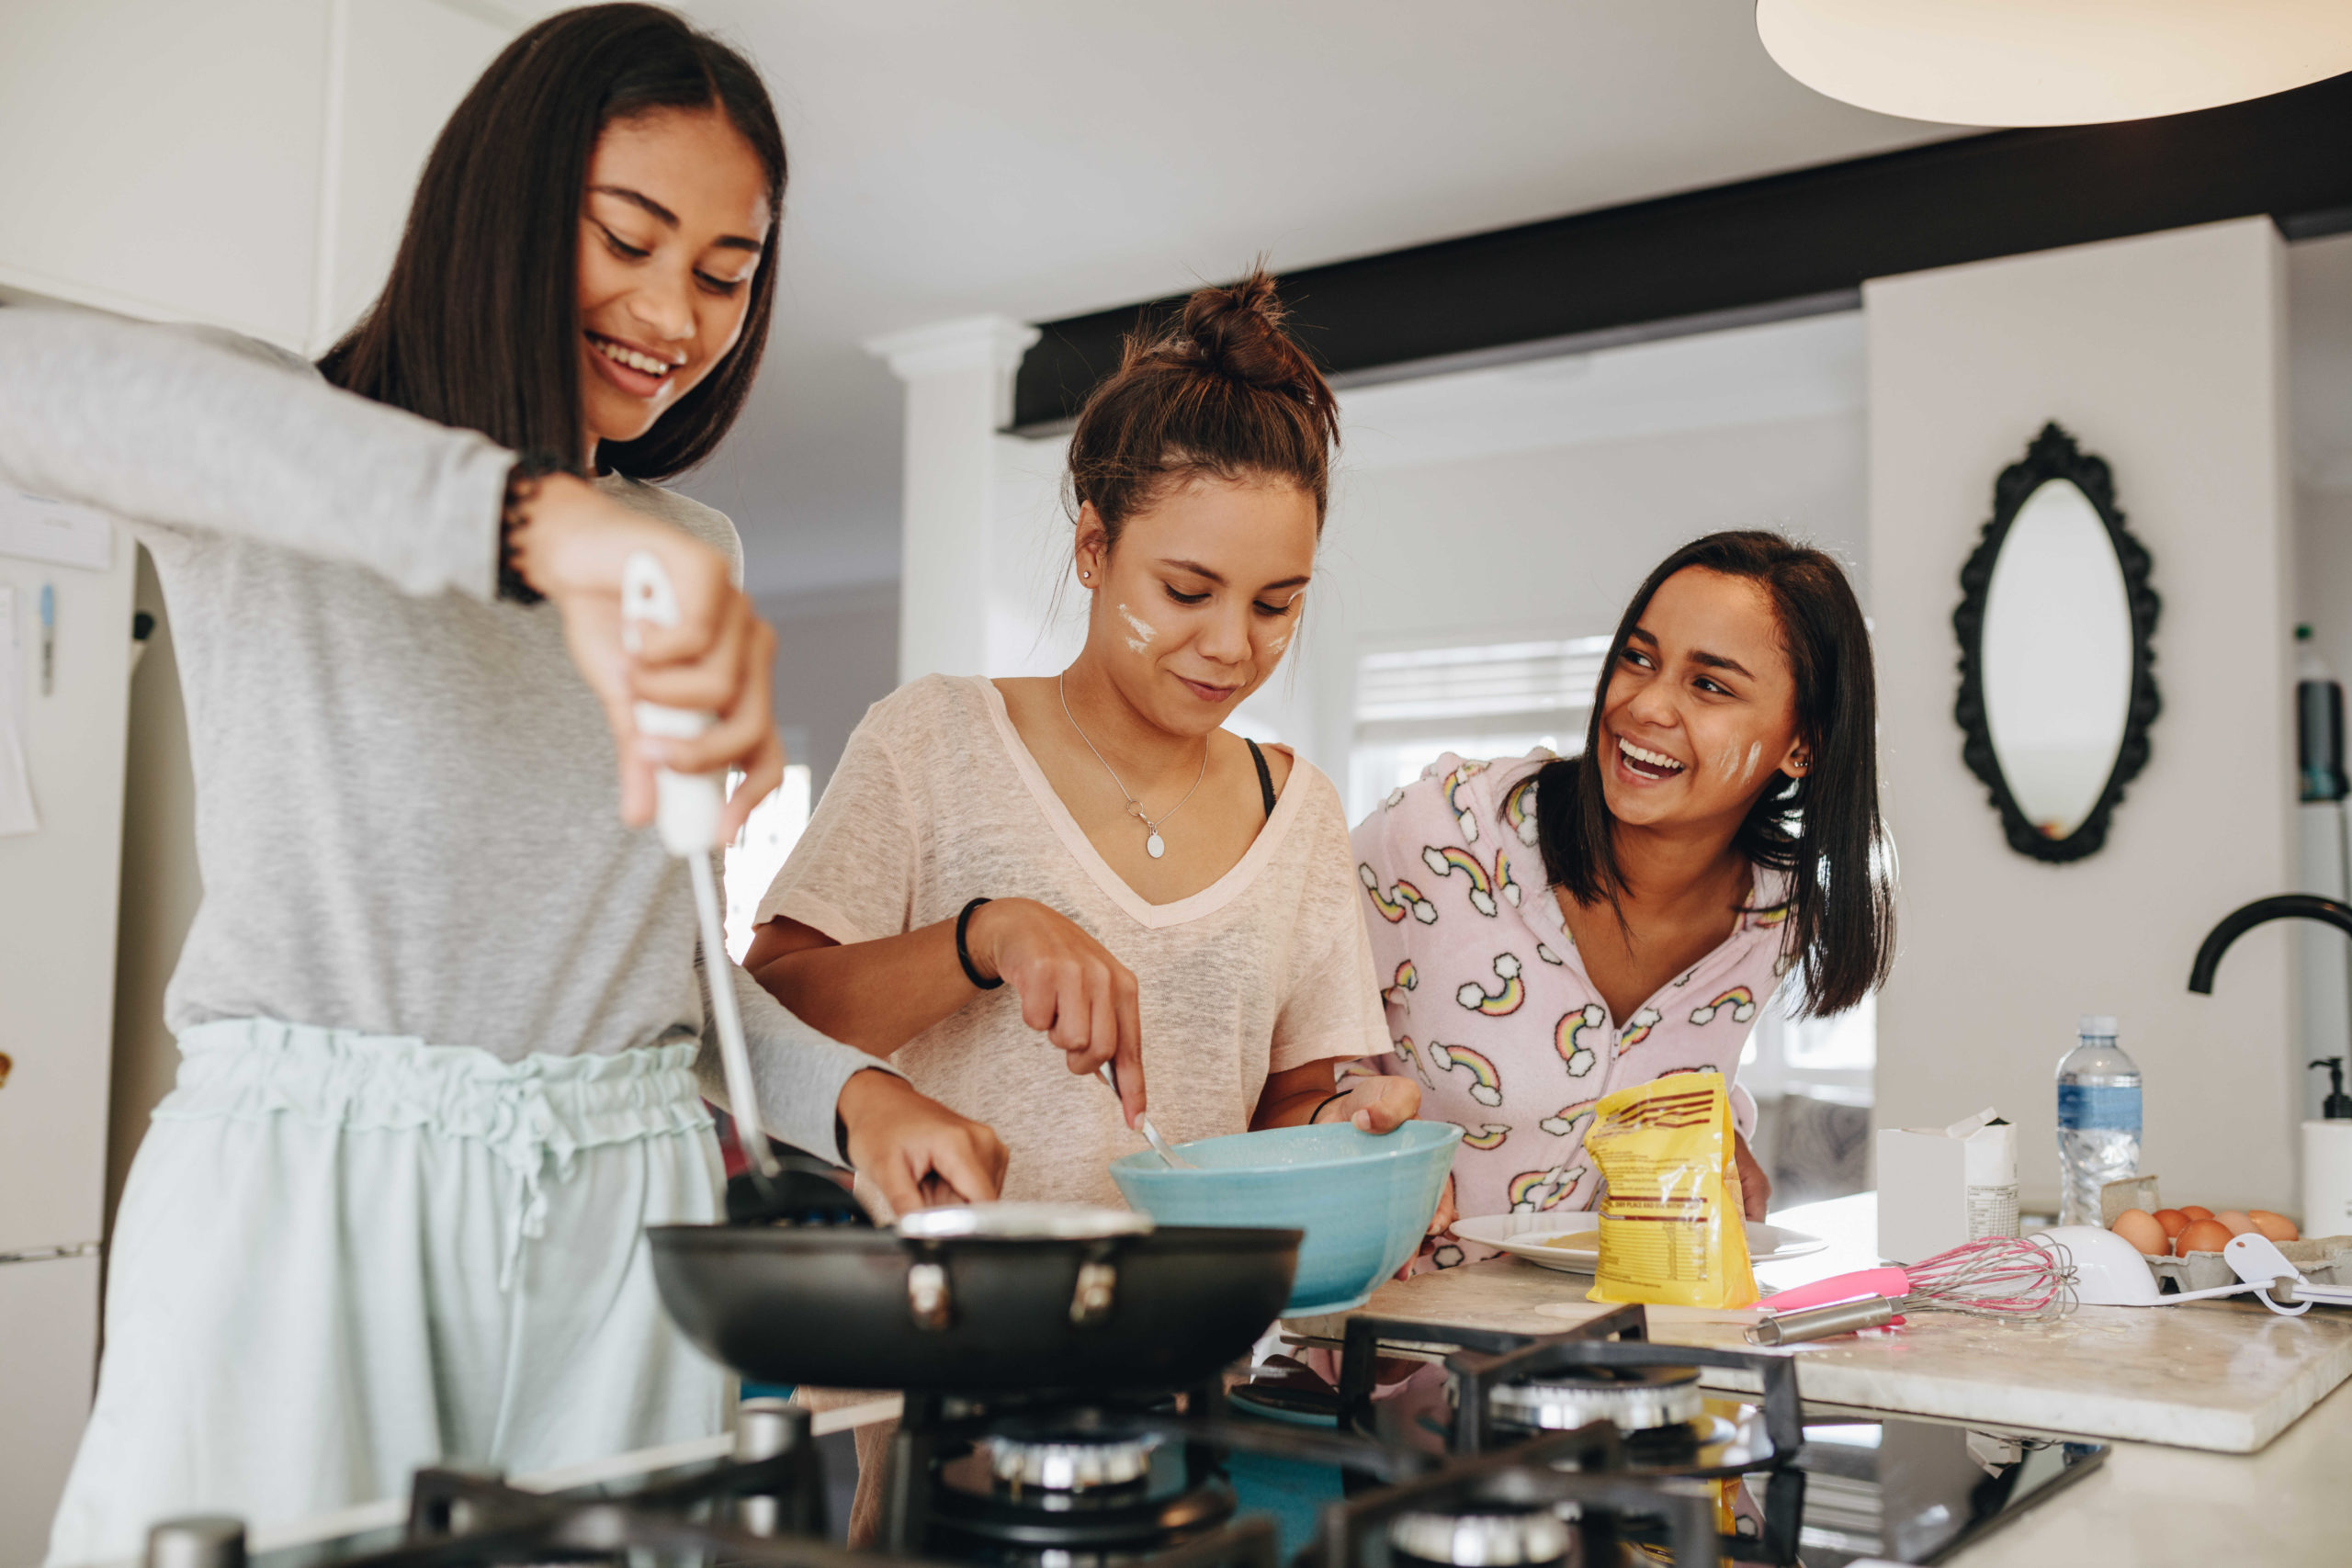 3 teenage girls smiling and cooking on the stovetop